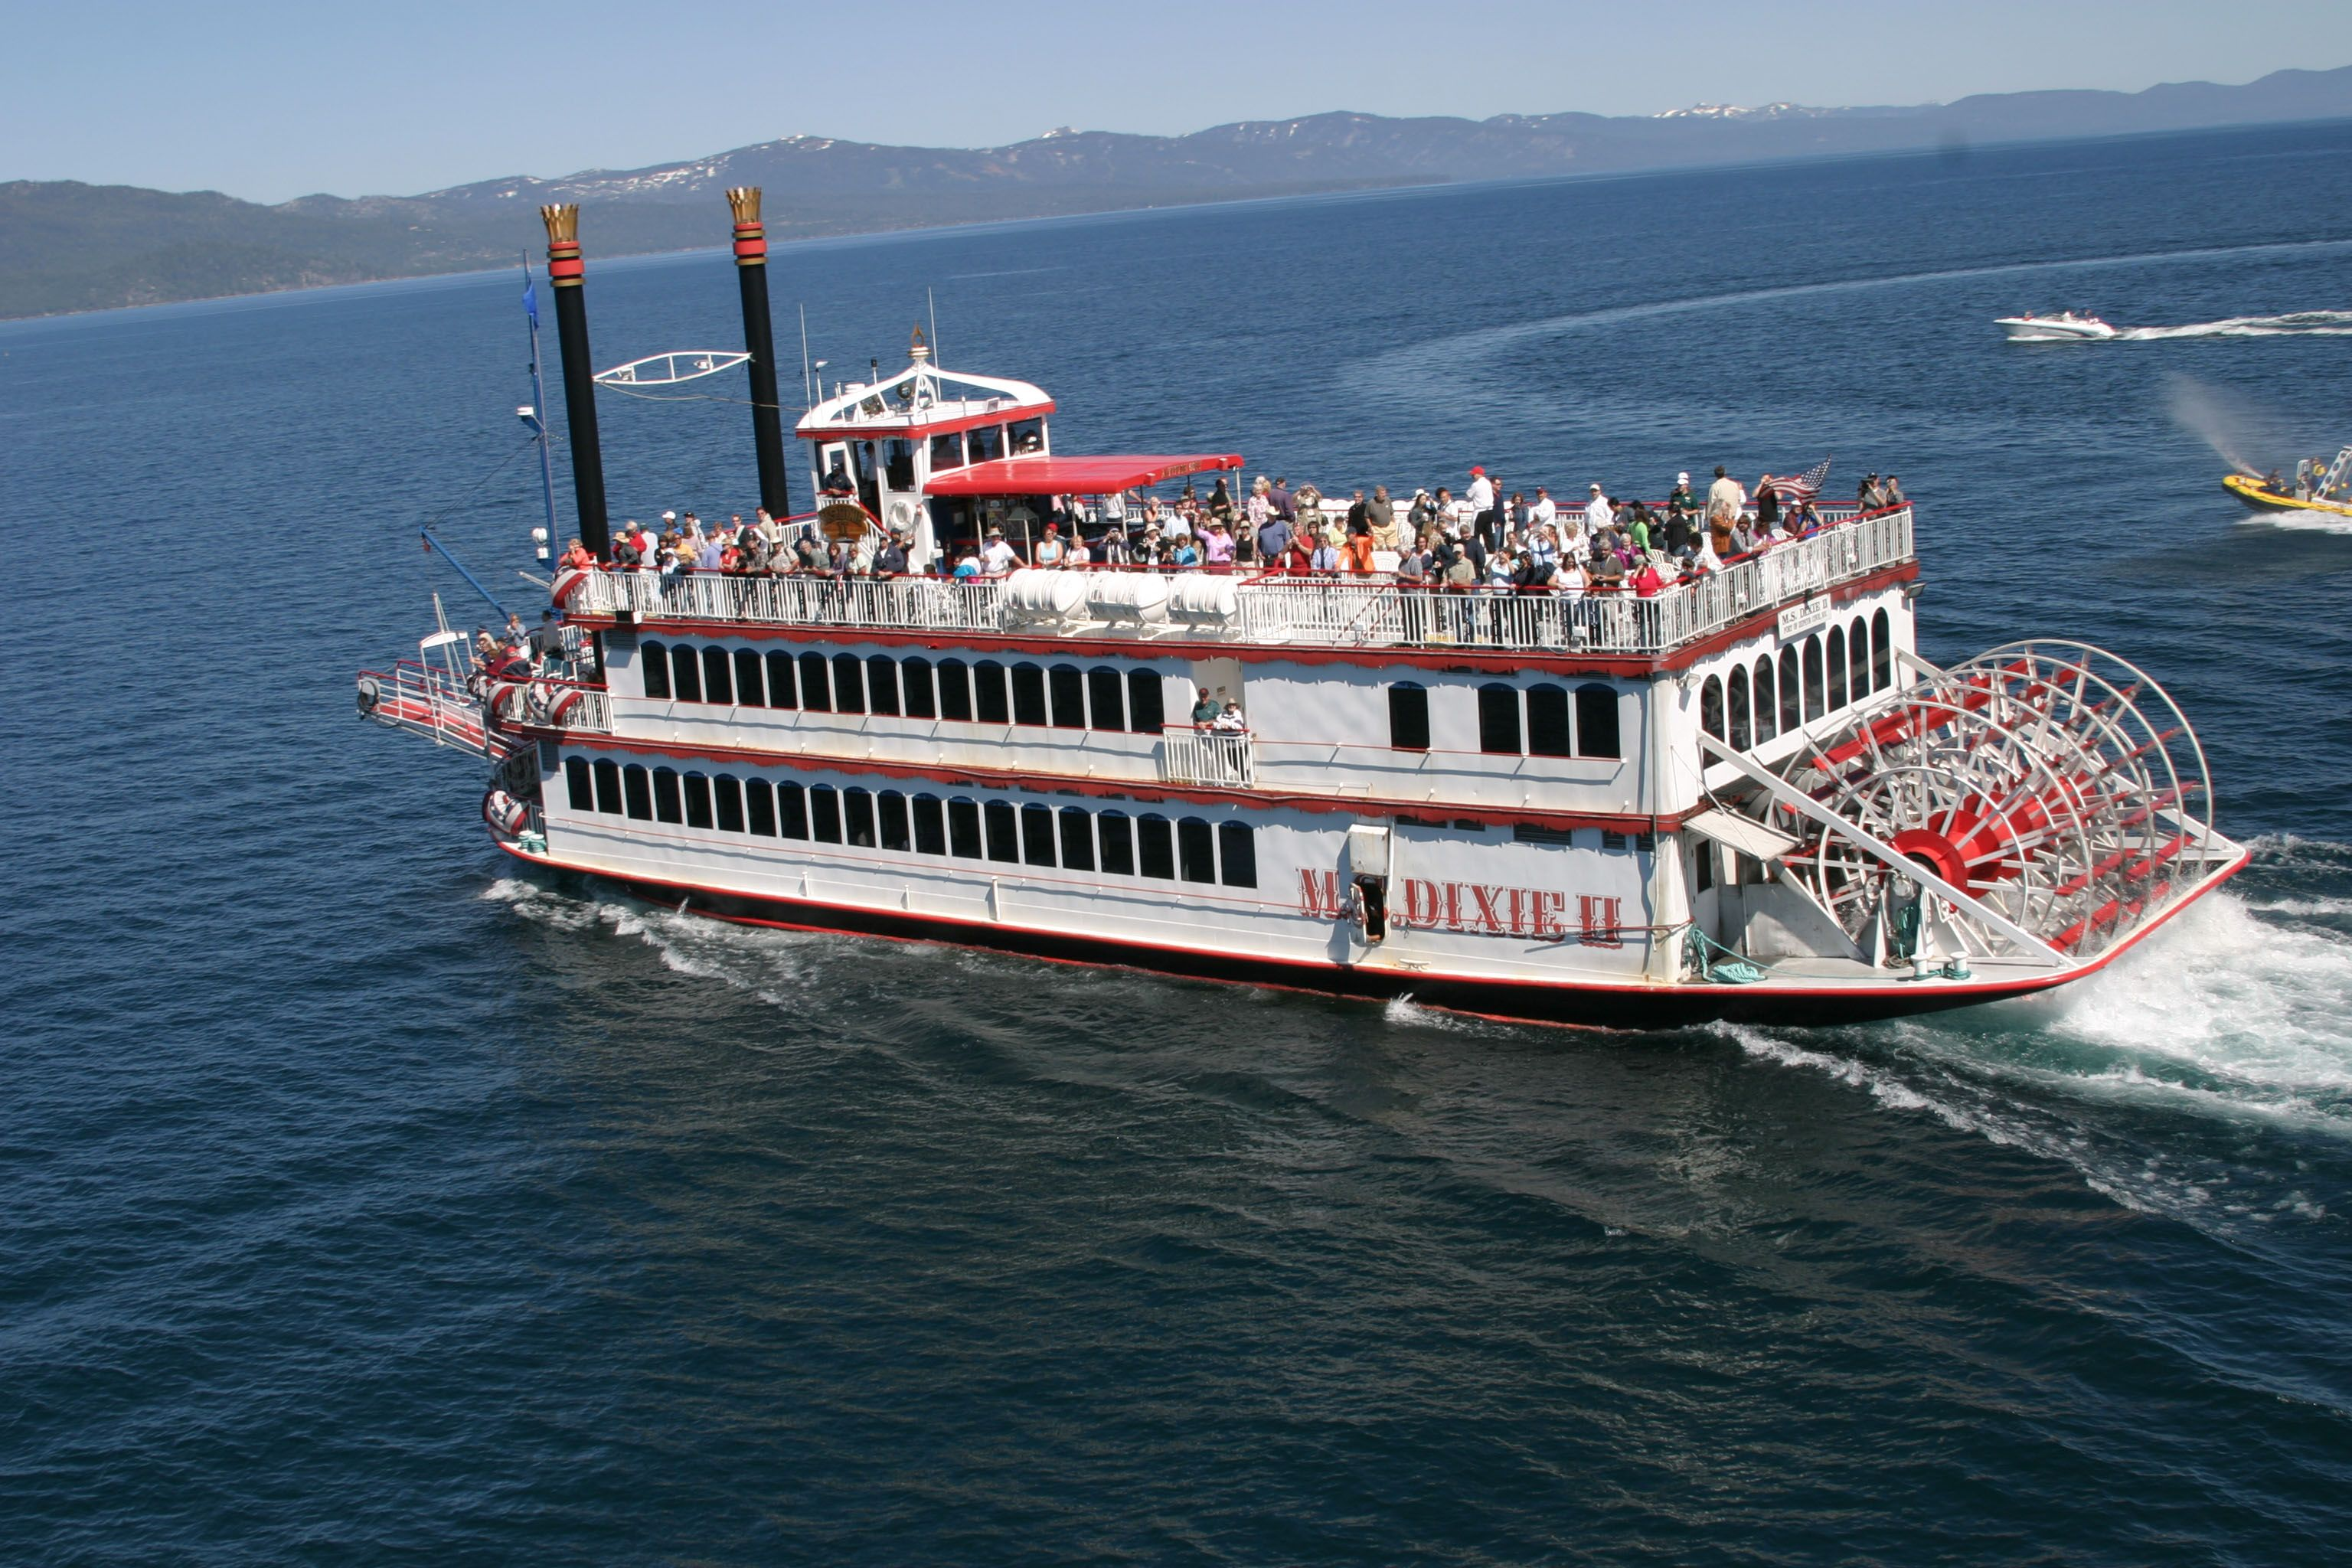 The 520-passenger, award-winning M.S. Dixie II is the largest ...